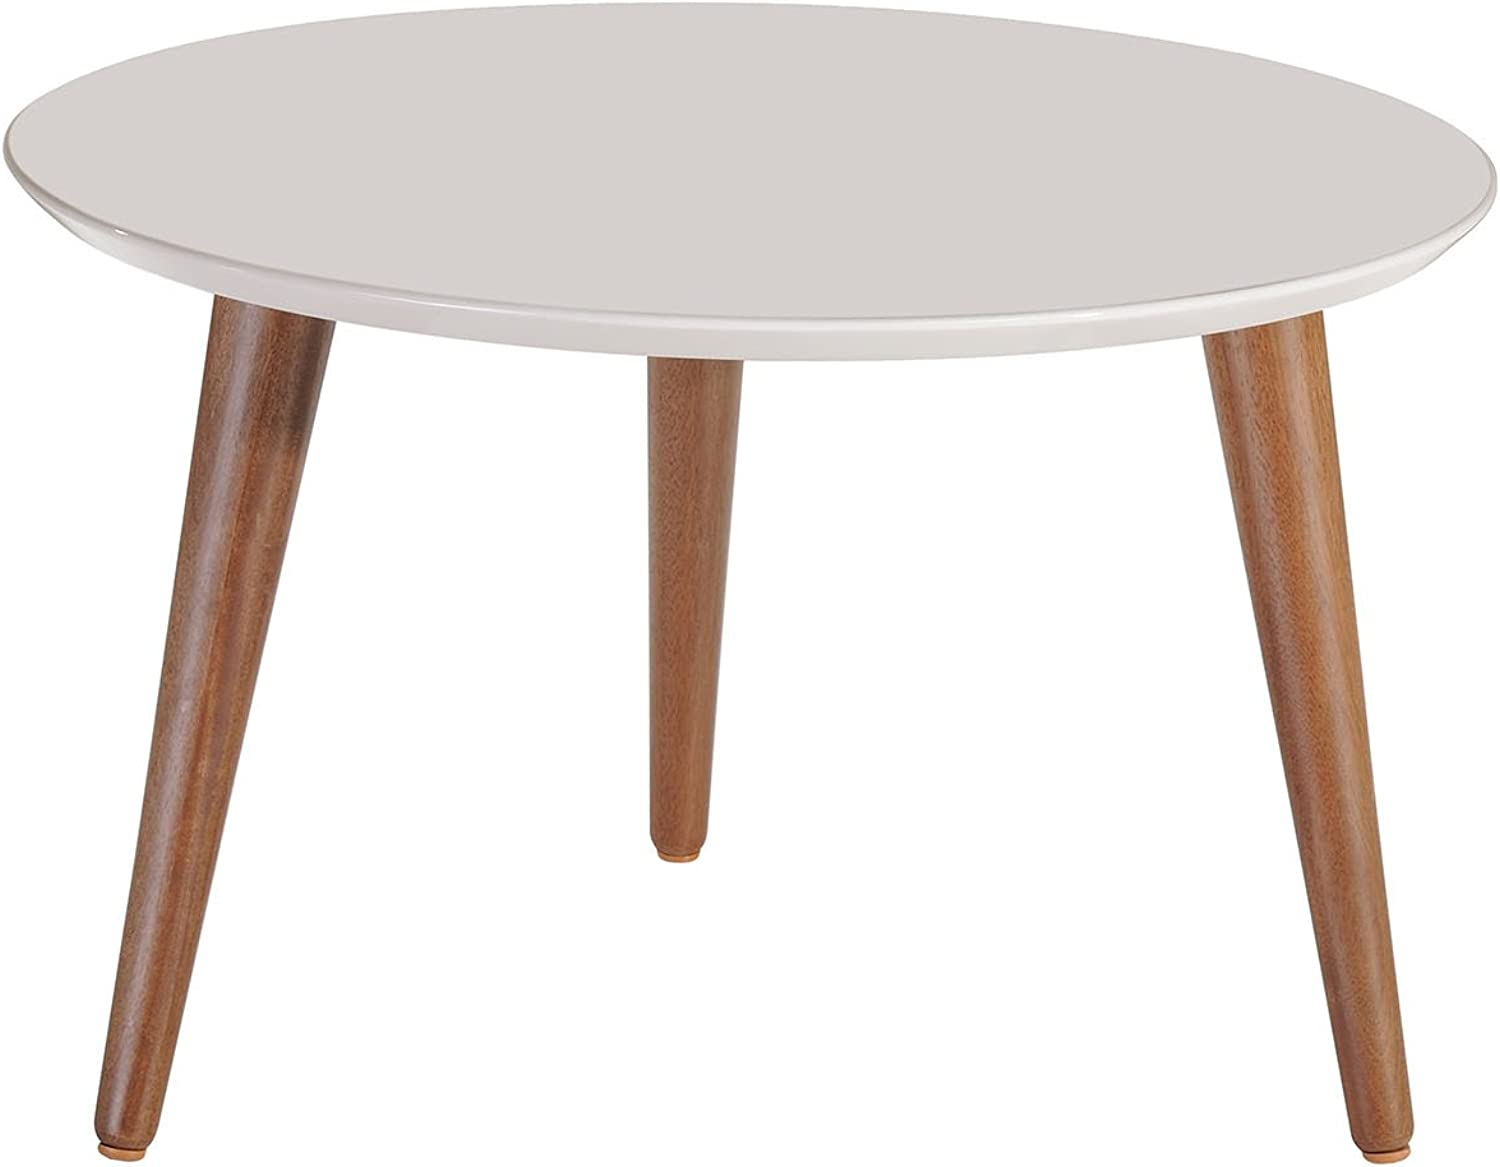 Manhattan Comfort 252252 Moore Mid-Century Modern Round Coffee Table, Off-White